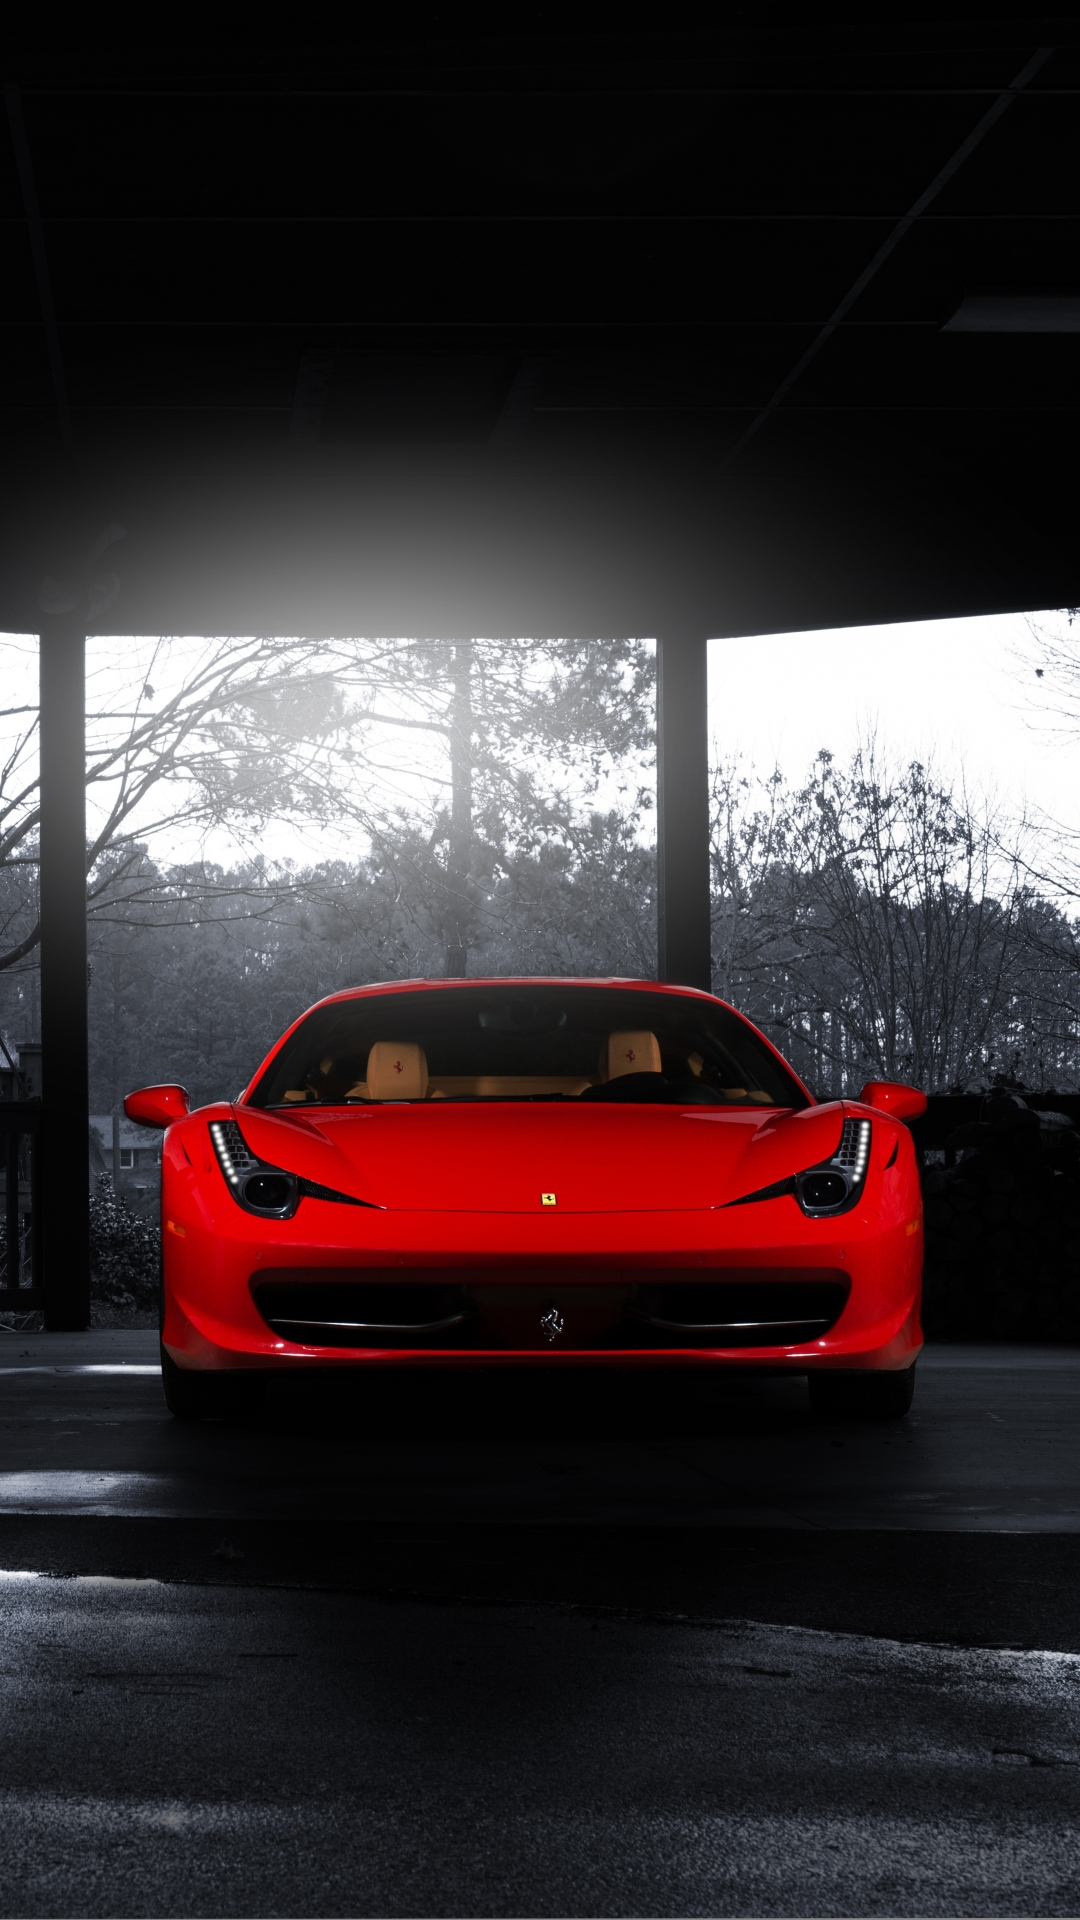 7 Ferrari 458 Apple Iphone 7 Plus 1080x1920 Wallpapers Mobile Abyss